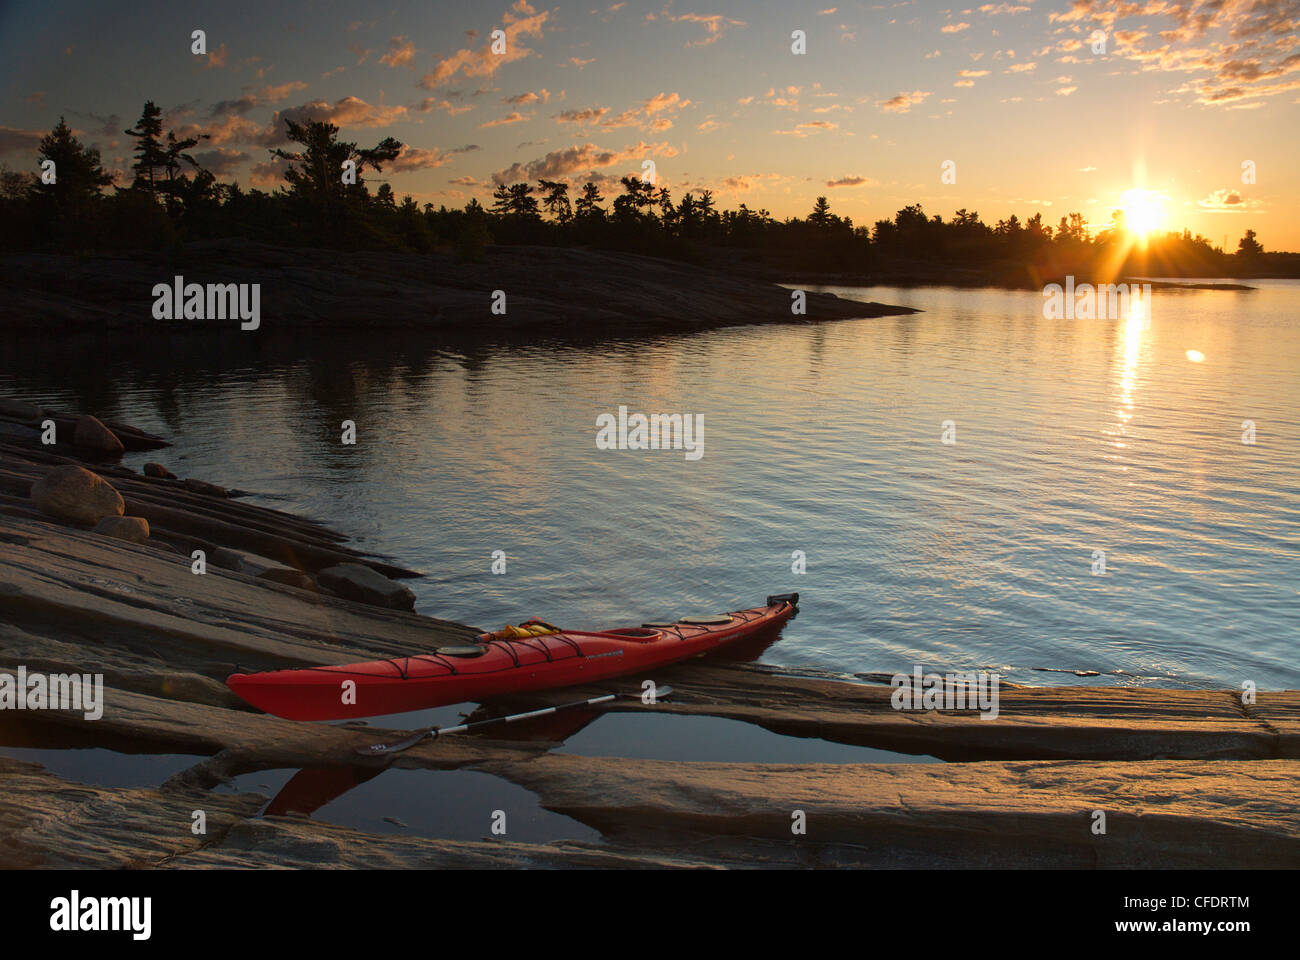 Snug Harbour, Franklin Island, Parry Sound, Geogian Bay, Lake Huron, Canadian Shield, Ontario, Canada - Stock Image